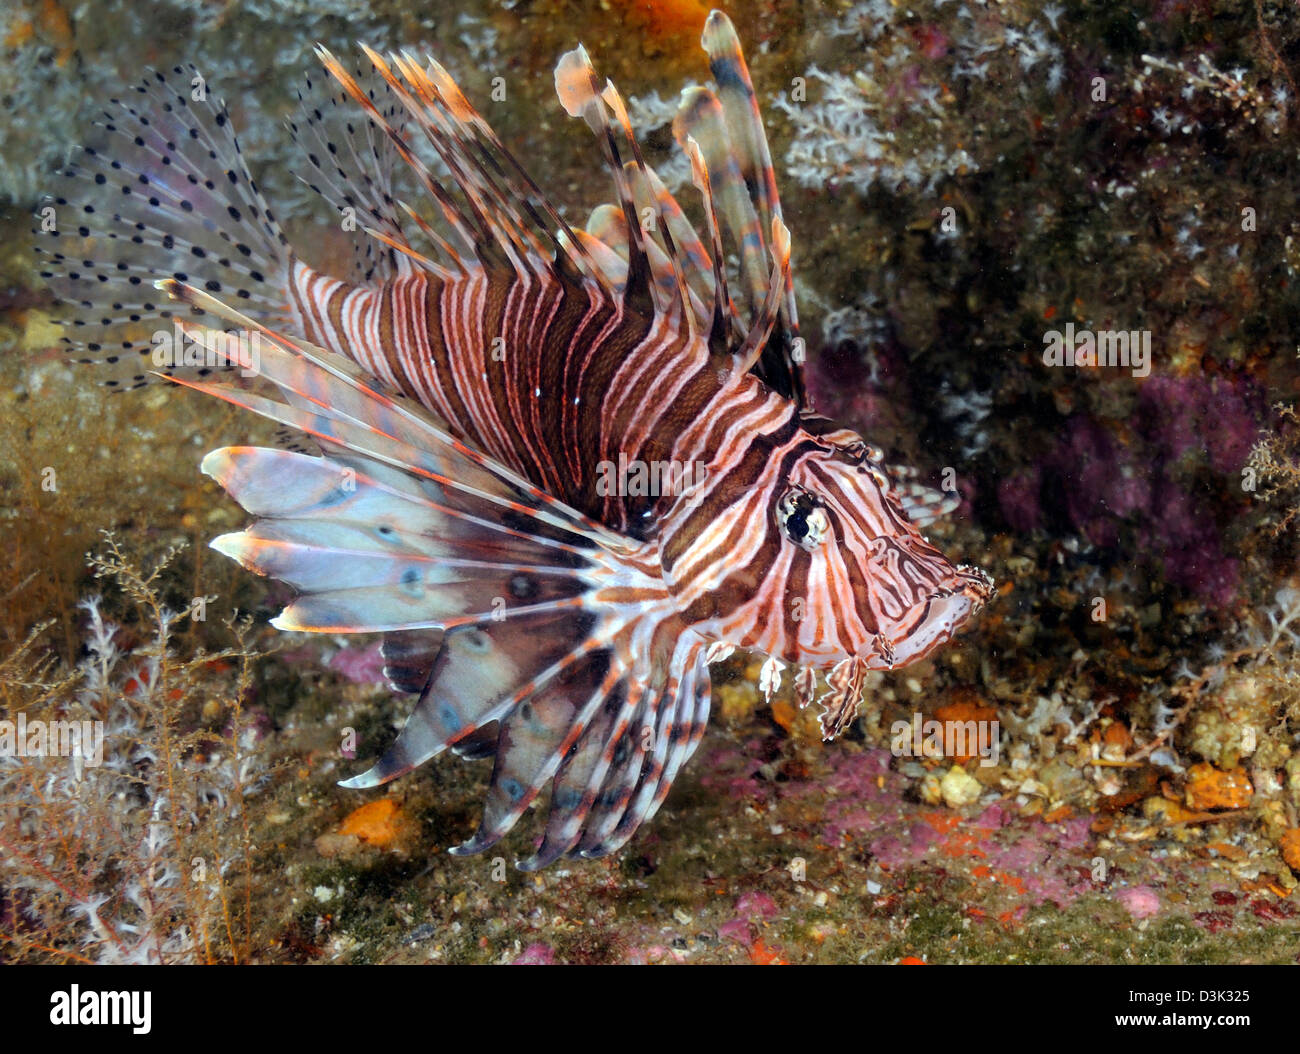 Invasive Indo-Pacific lionfish on wreck in North Carolina. - Stock Image